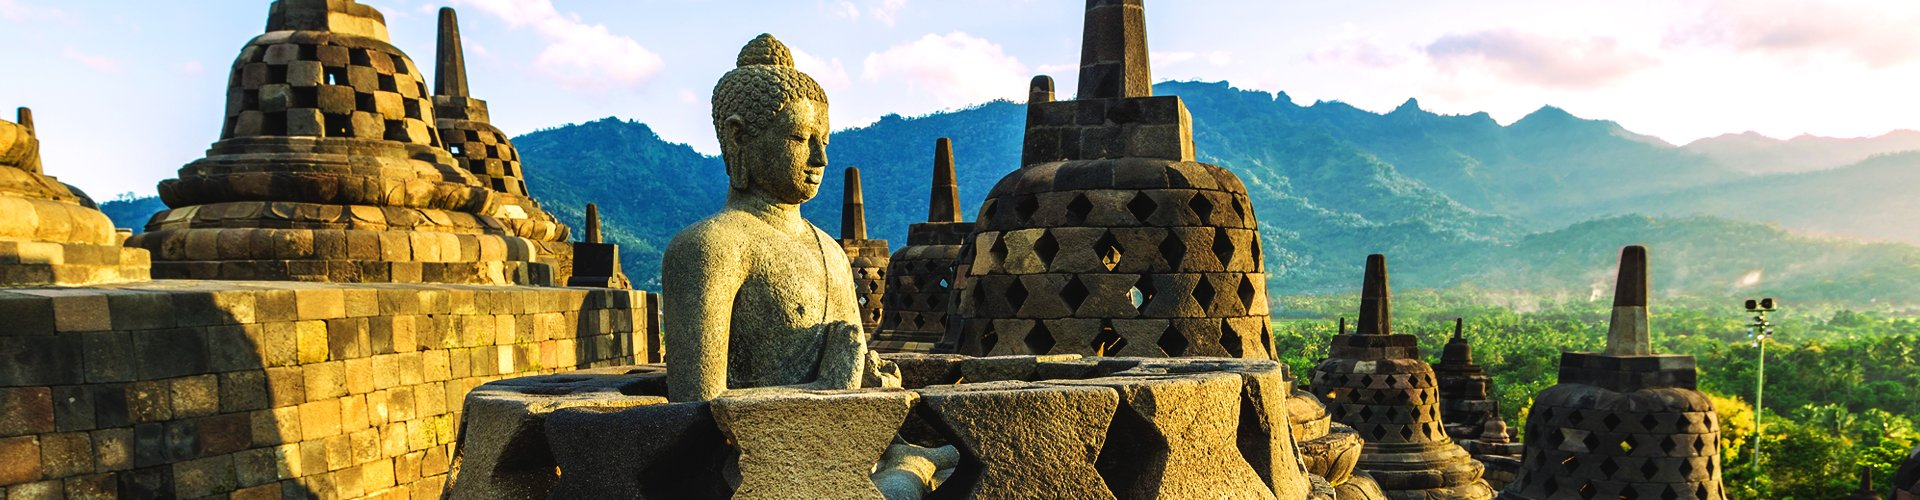 Borobodur op Java, Indonesië